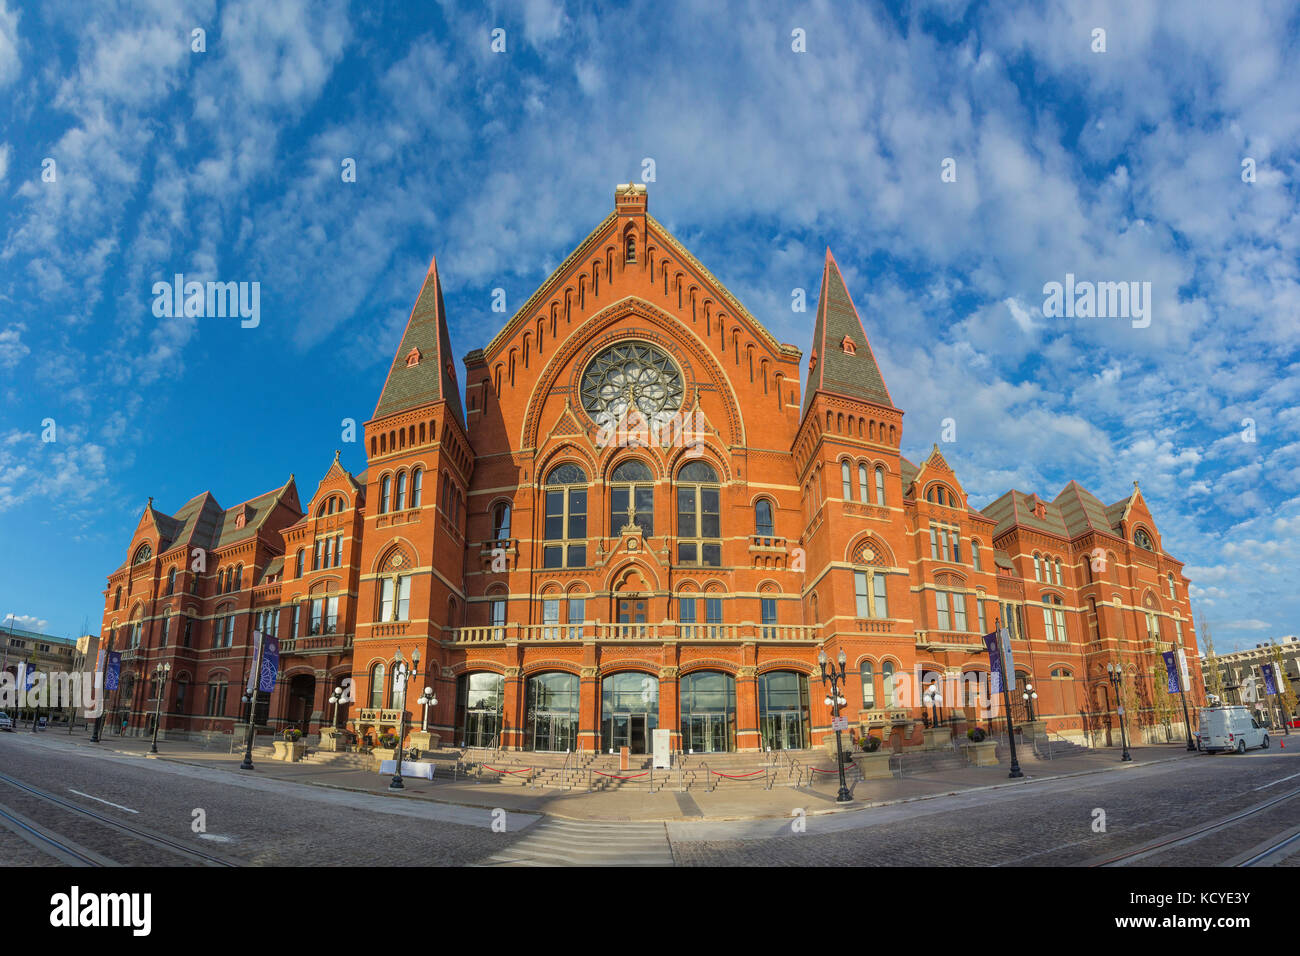 The newly renovated Music Hall located in Cincinnati Ohio. - Stock Image